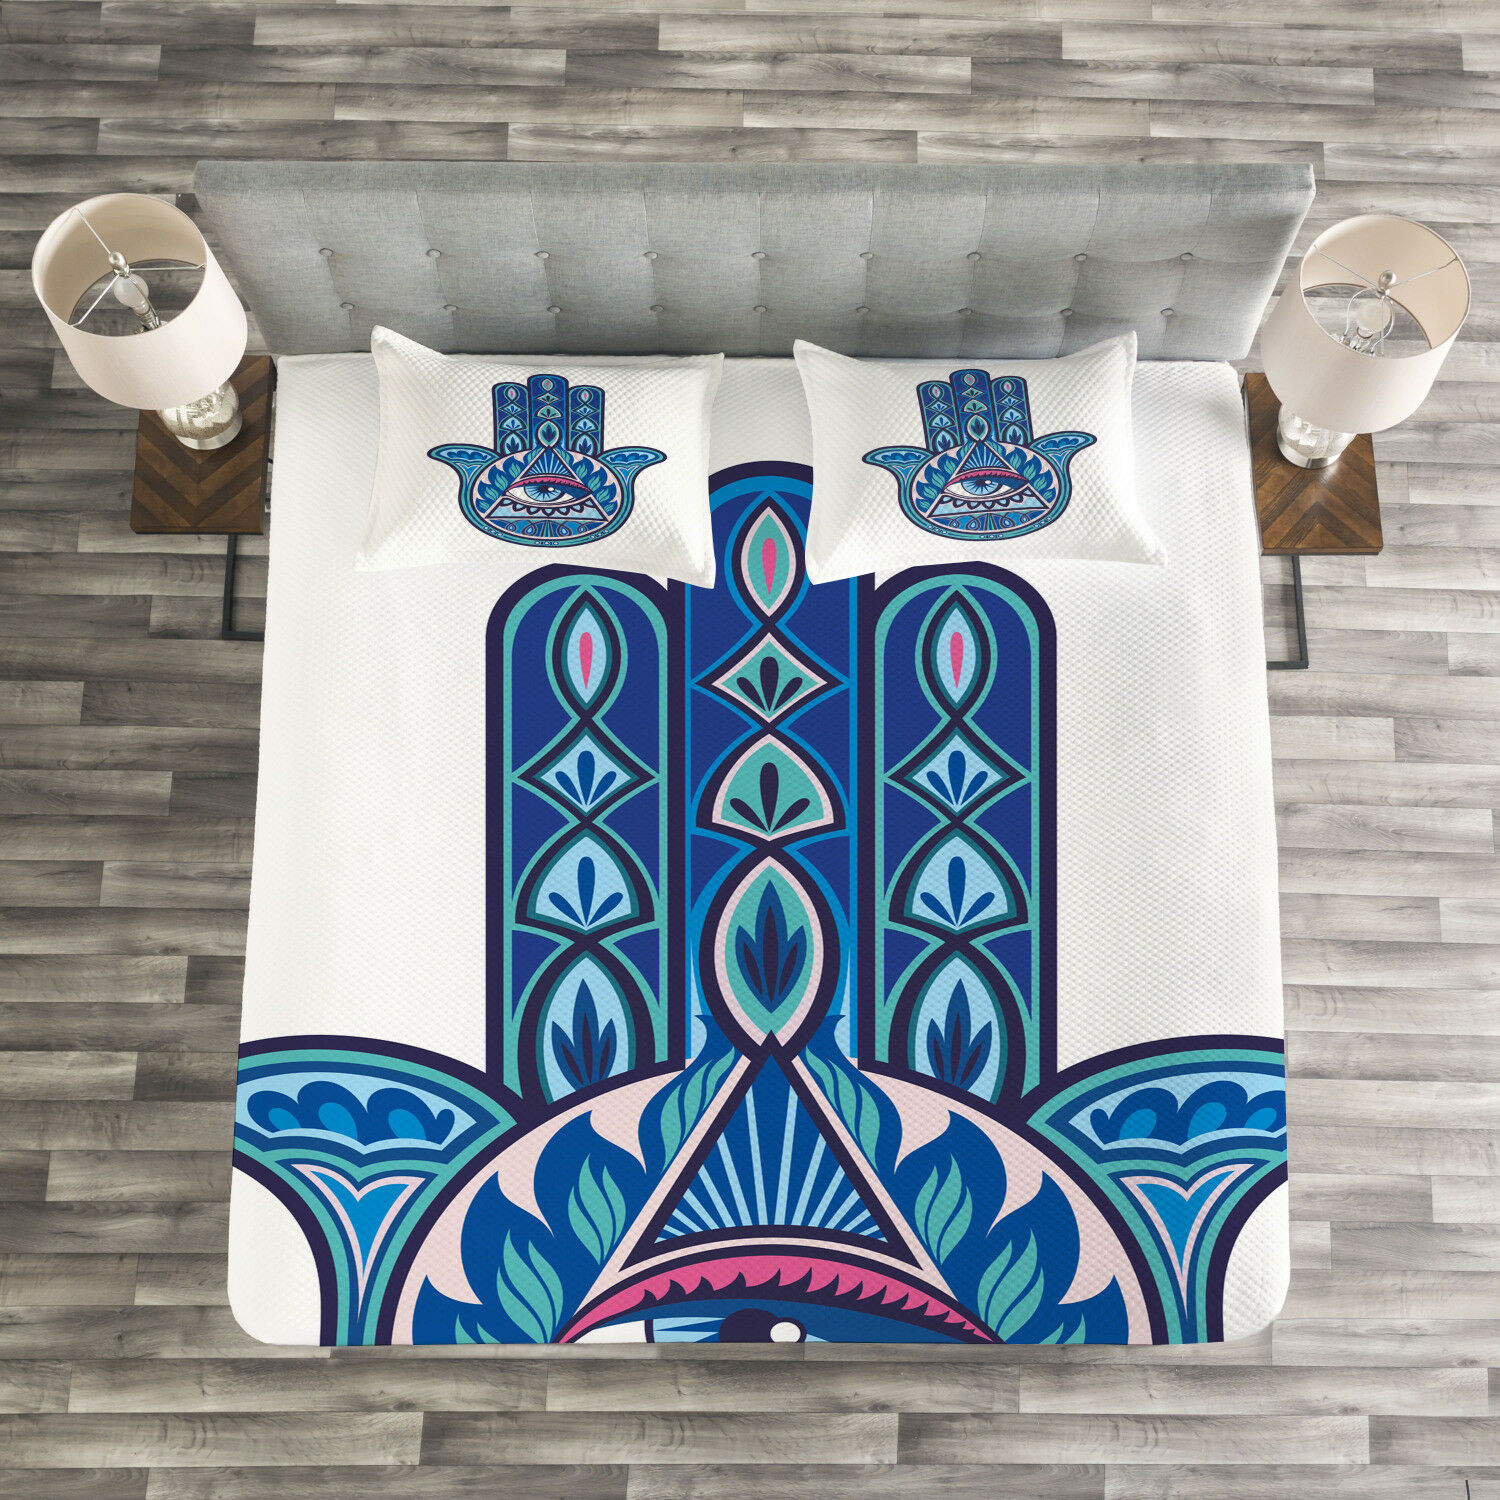 Evil Eye Quilted Bedspread & Pillow Shams Set, Vibrant Hamsa Triangle Print